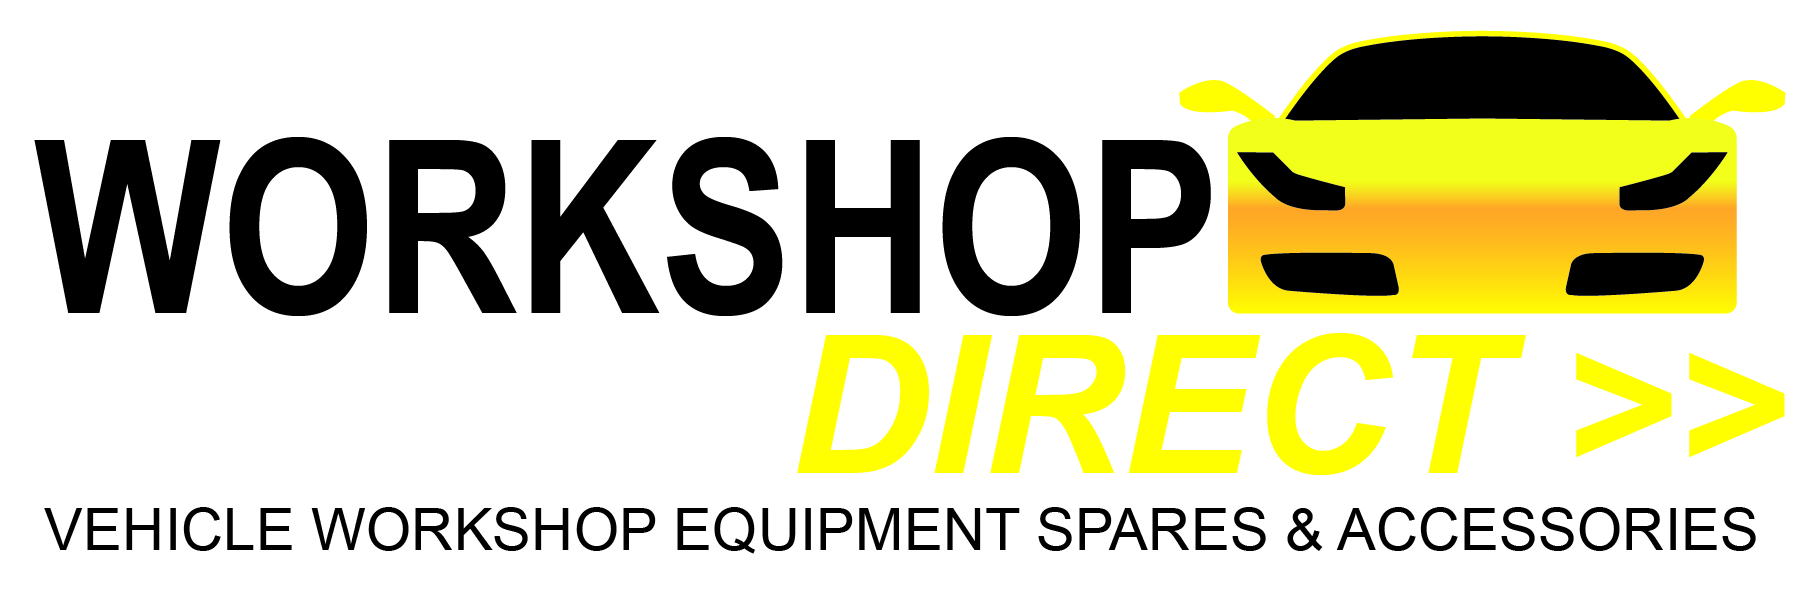 Workshop Direct Logo 011215 02